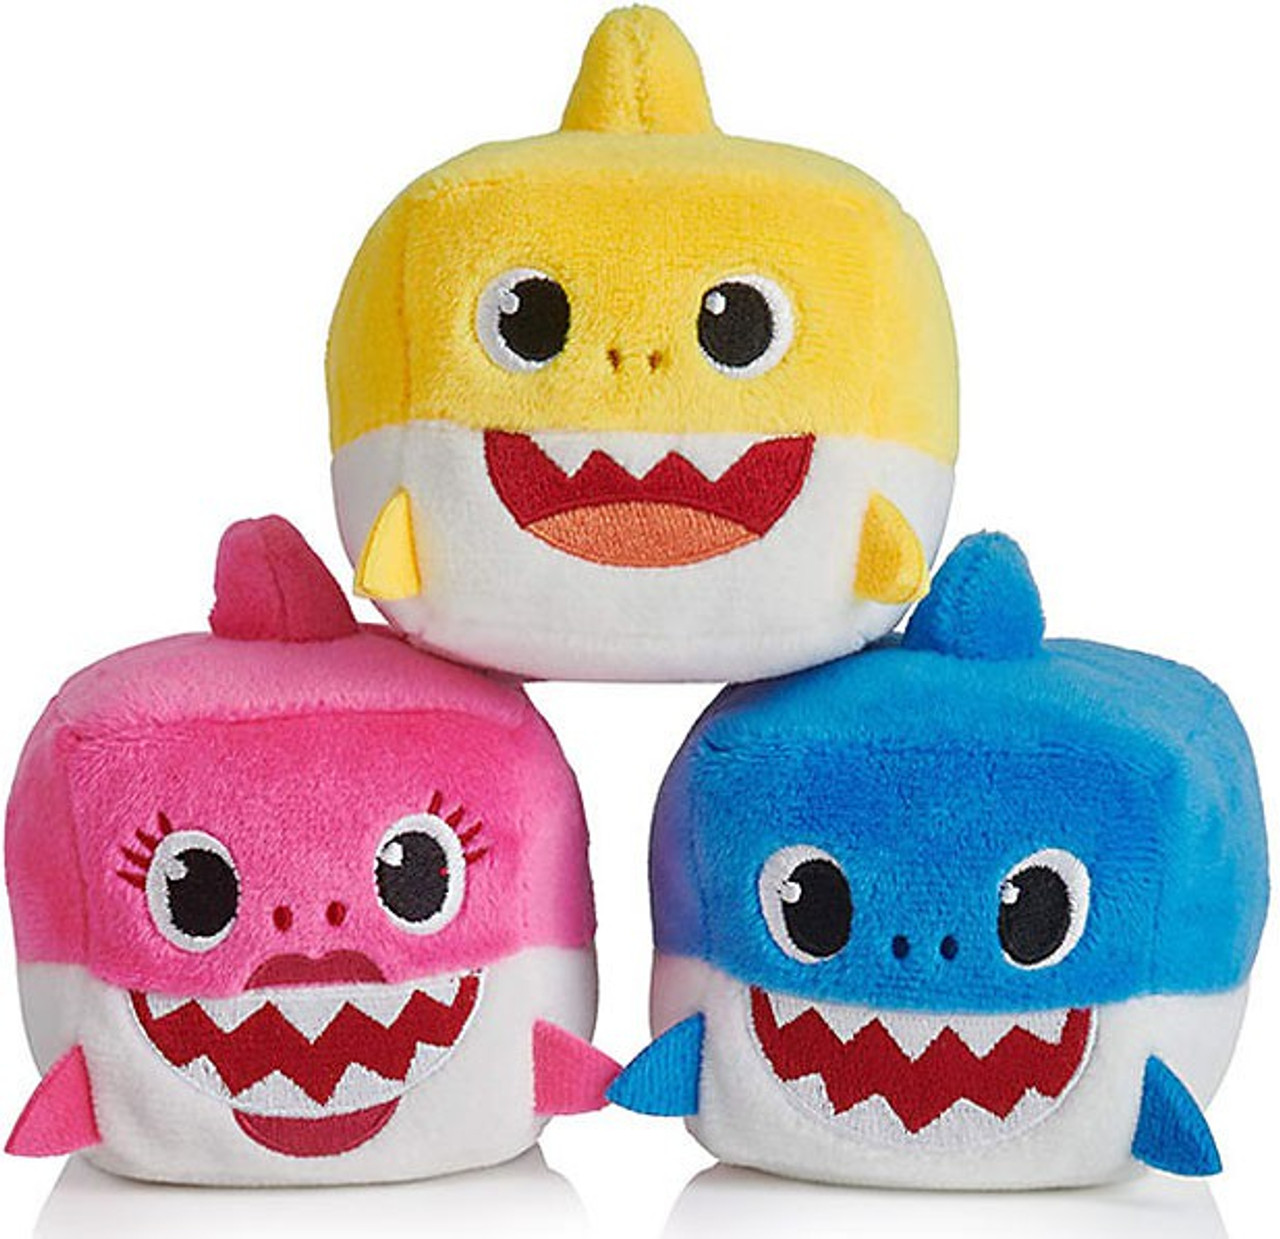 ENGLISH SONG 100/% AUTHENTIC Pinkfong BABY SHARK Sound Plush Doll CUBE toy